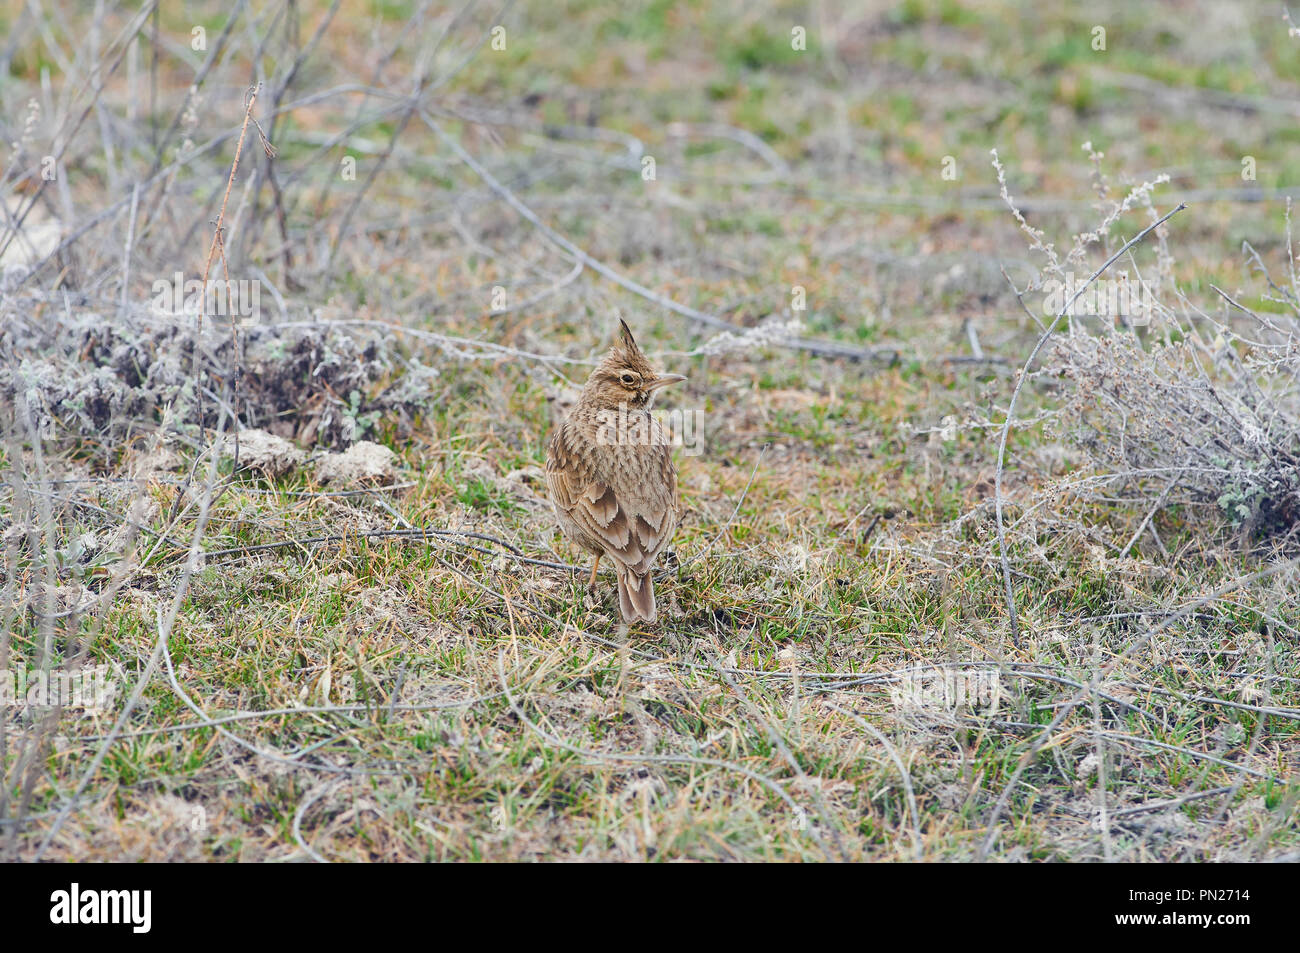 Crested lark (Galerida cristata) sits on the ground in a natural habitat. Stock Photo